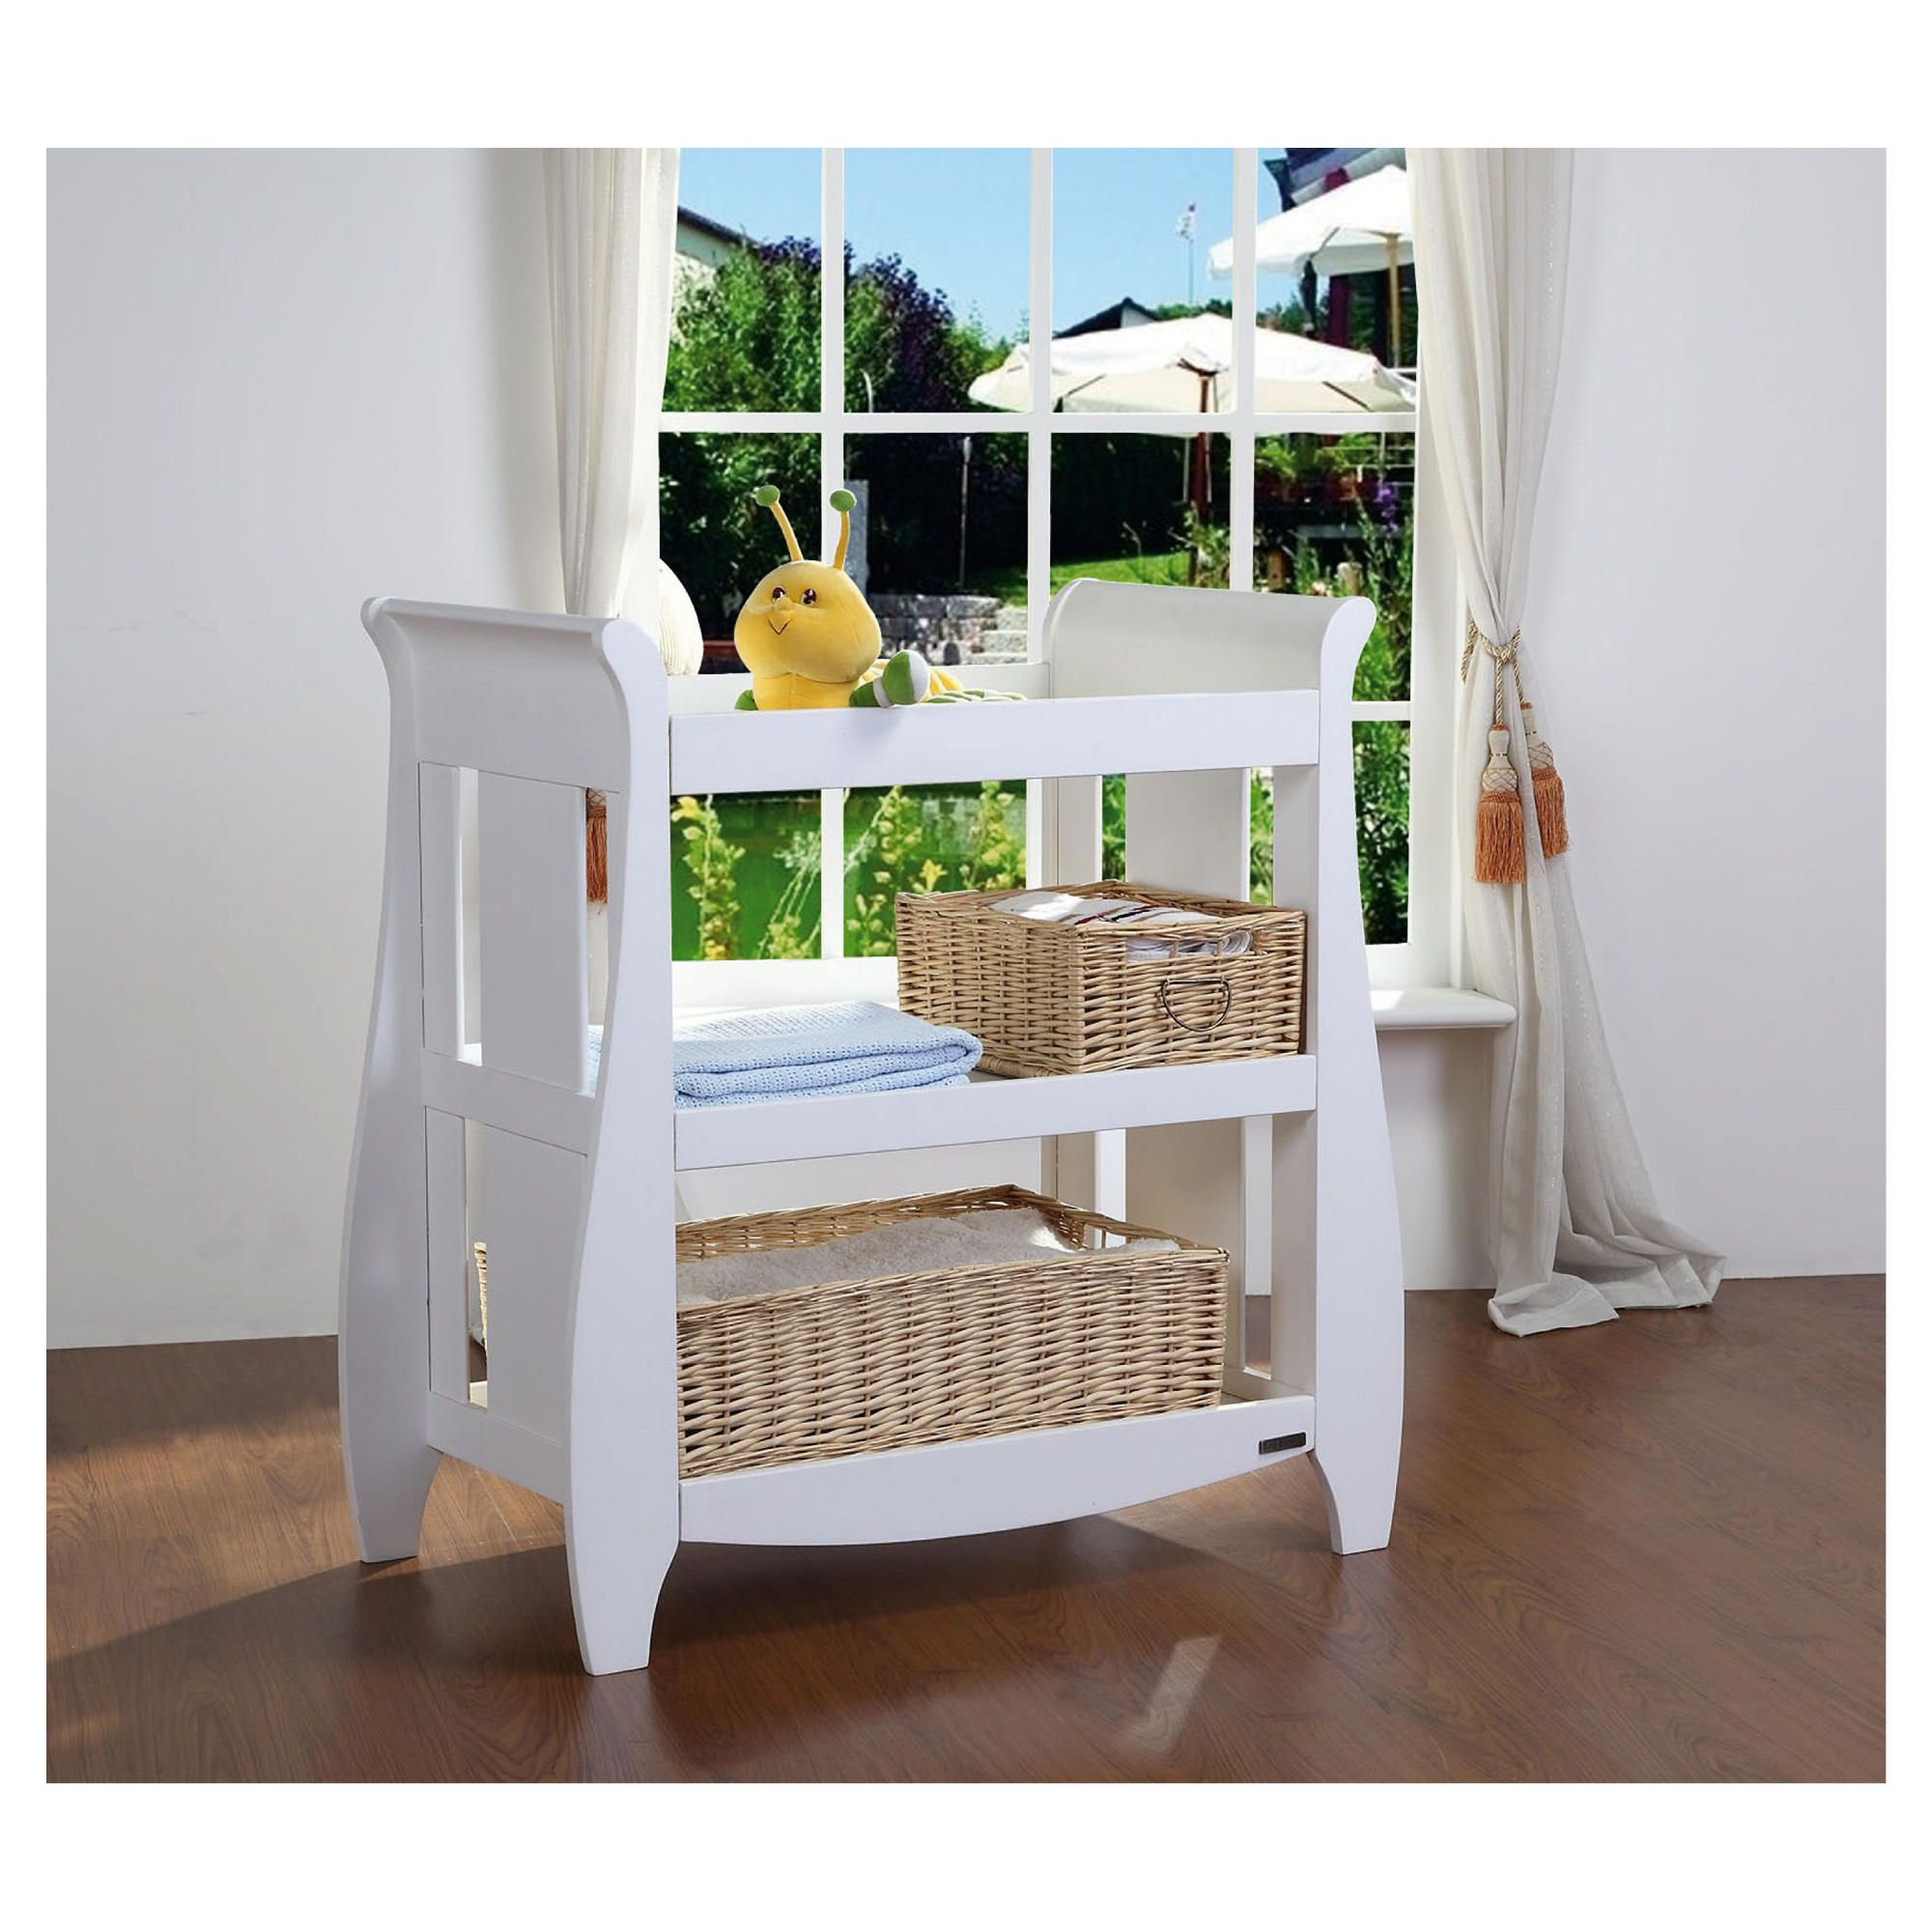 Tutti Bambini Lucas Cotbed with Shelf Changer Nursery Room Set, White at Tesco Direct